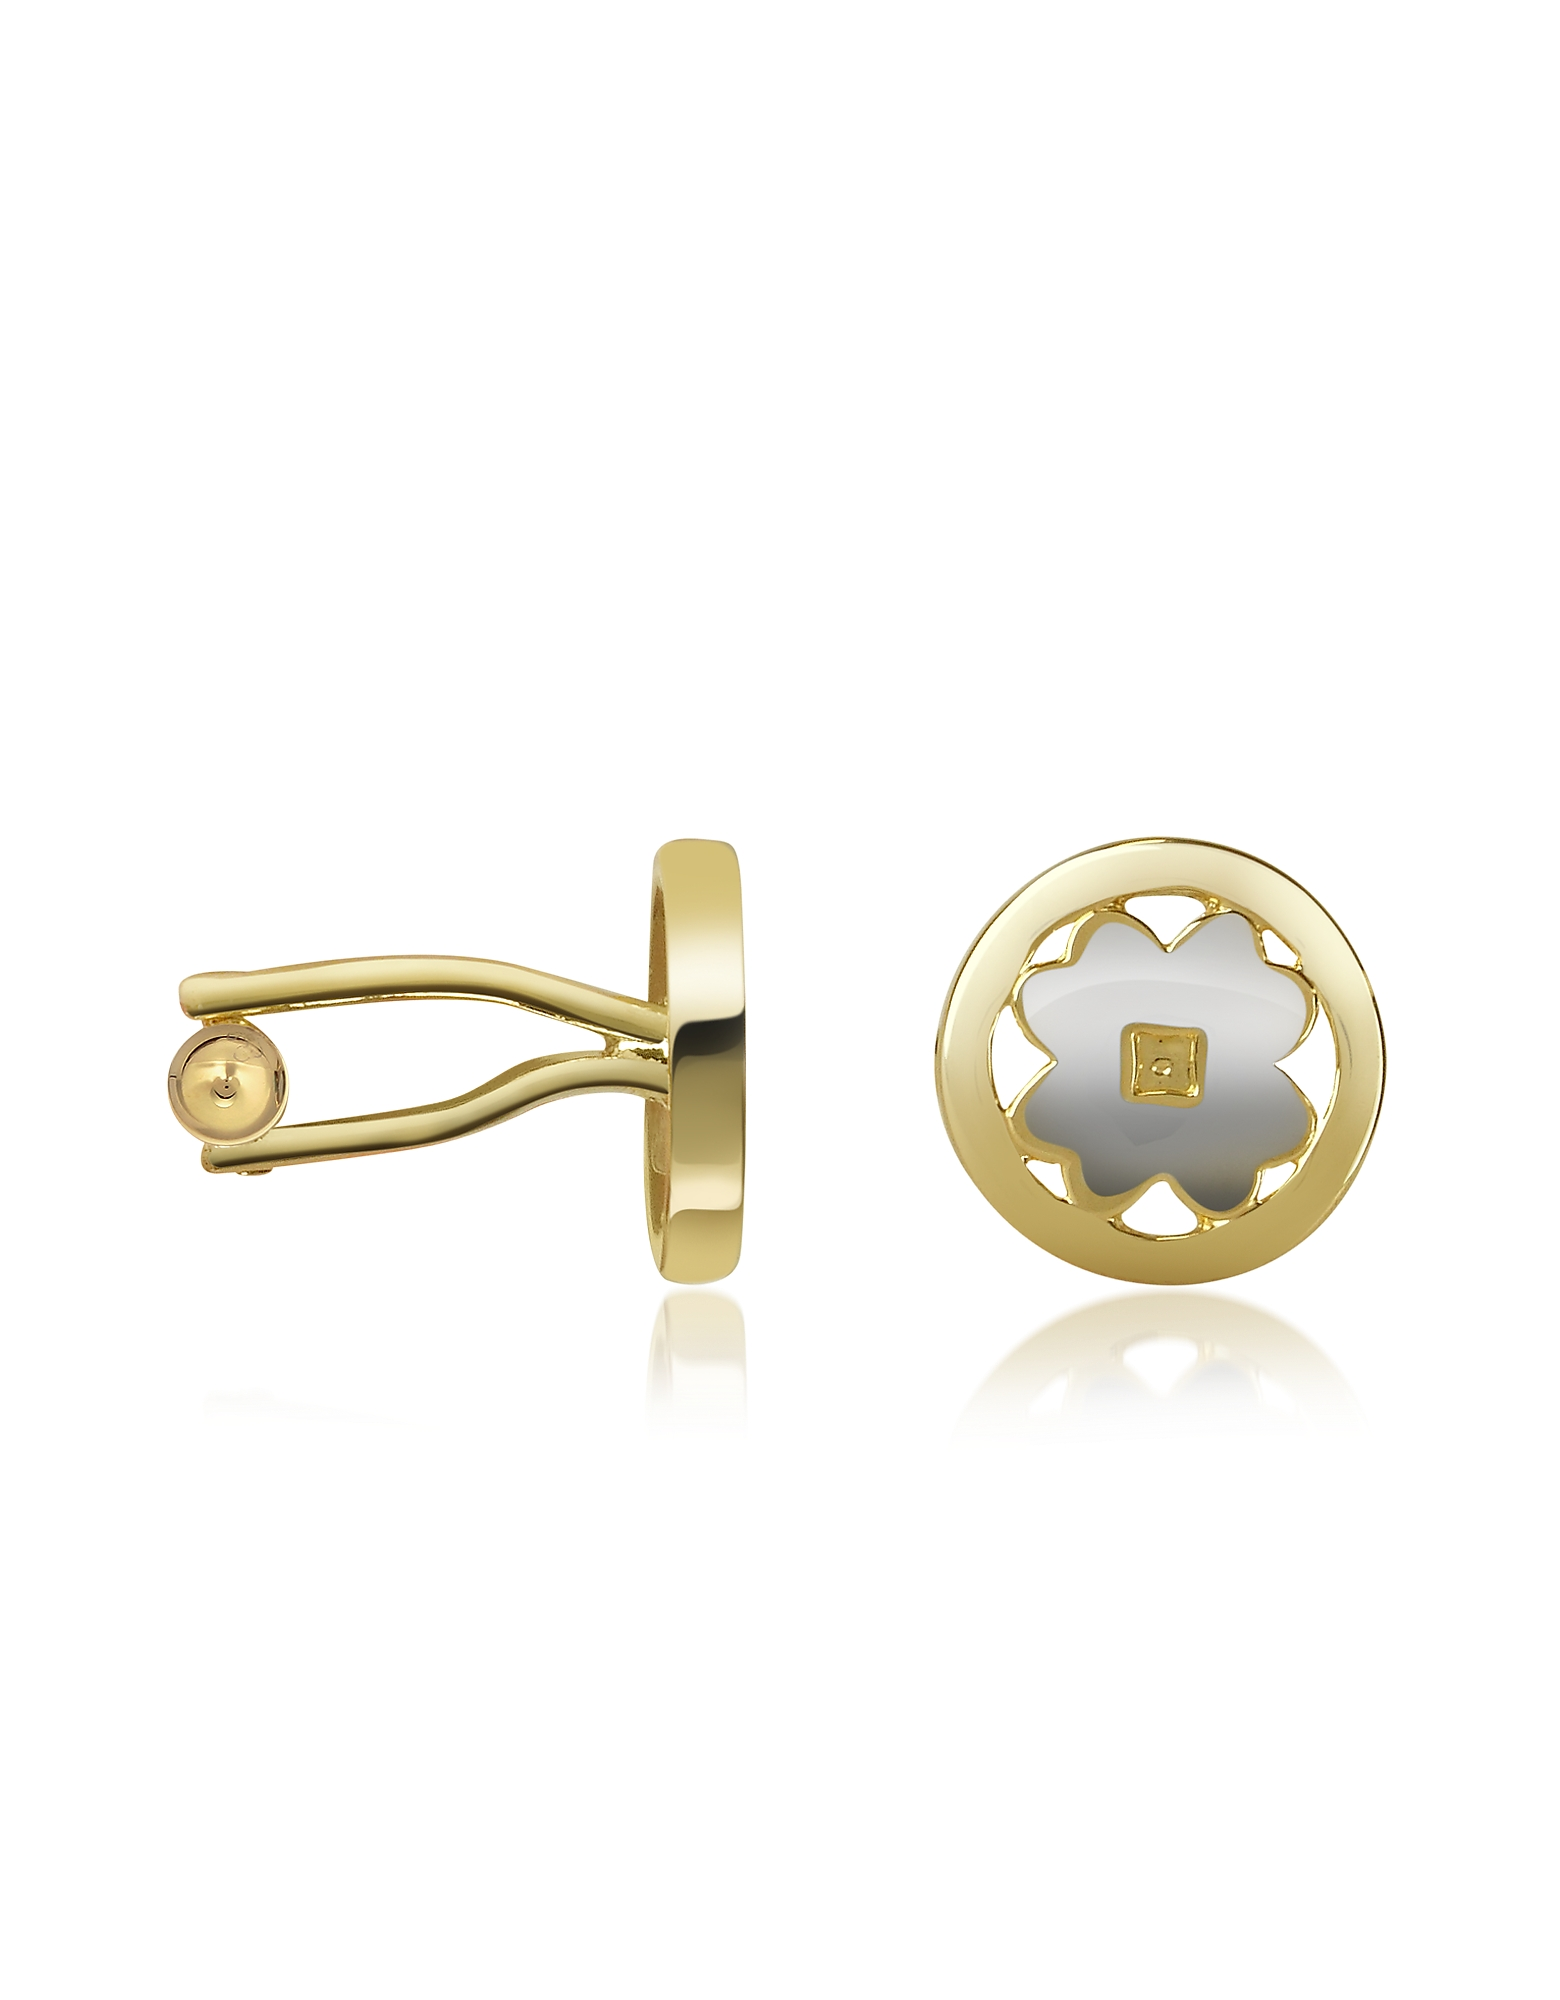 Four-Leaf Clover Gold Plated Cuff Links